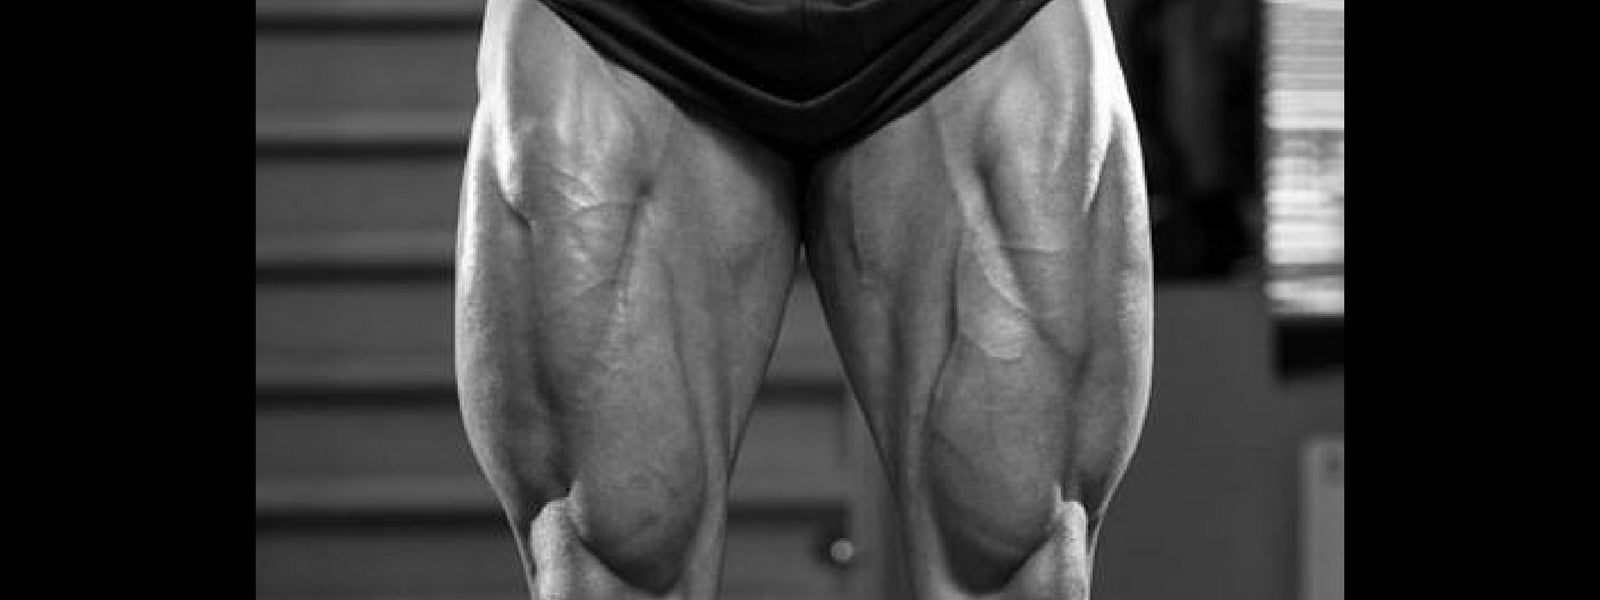 Exhaust your legs into building strong muscles